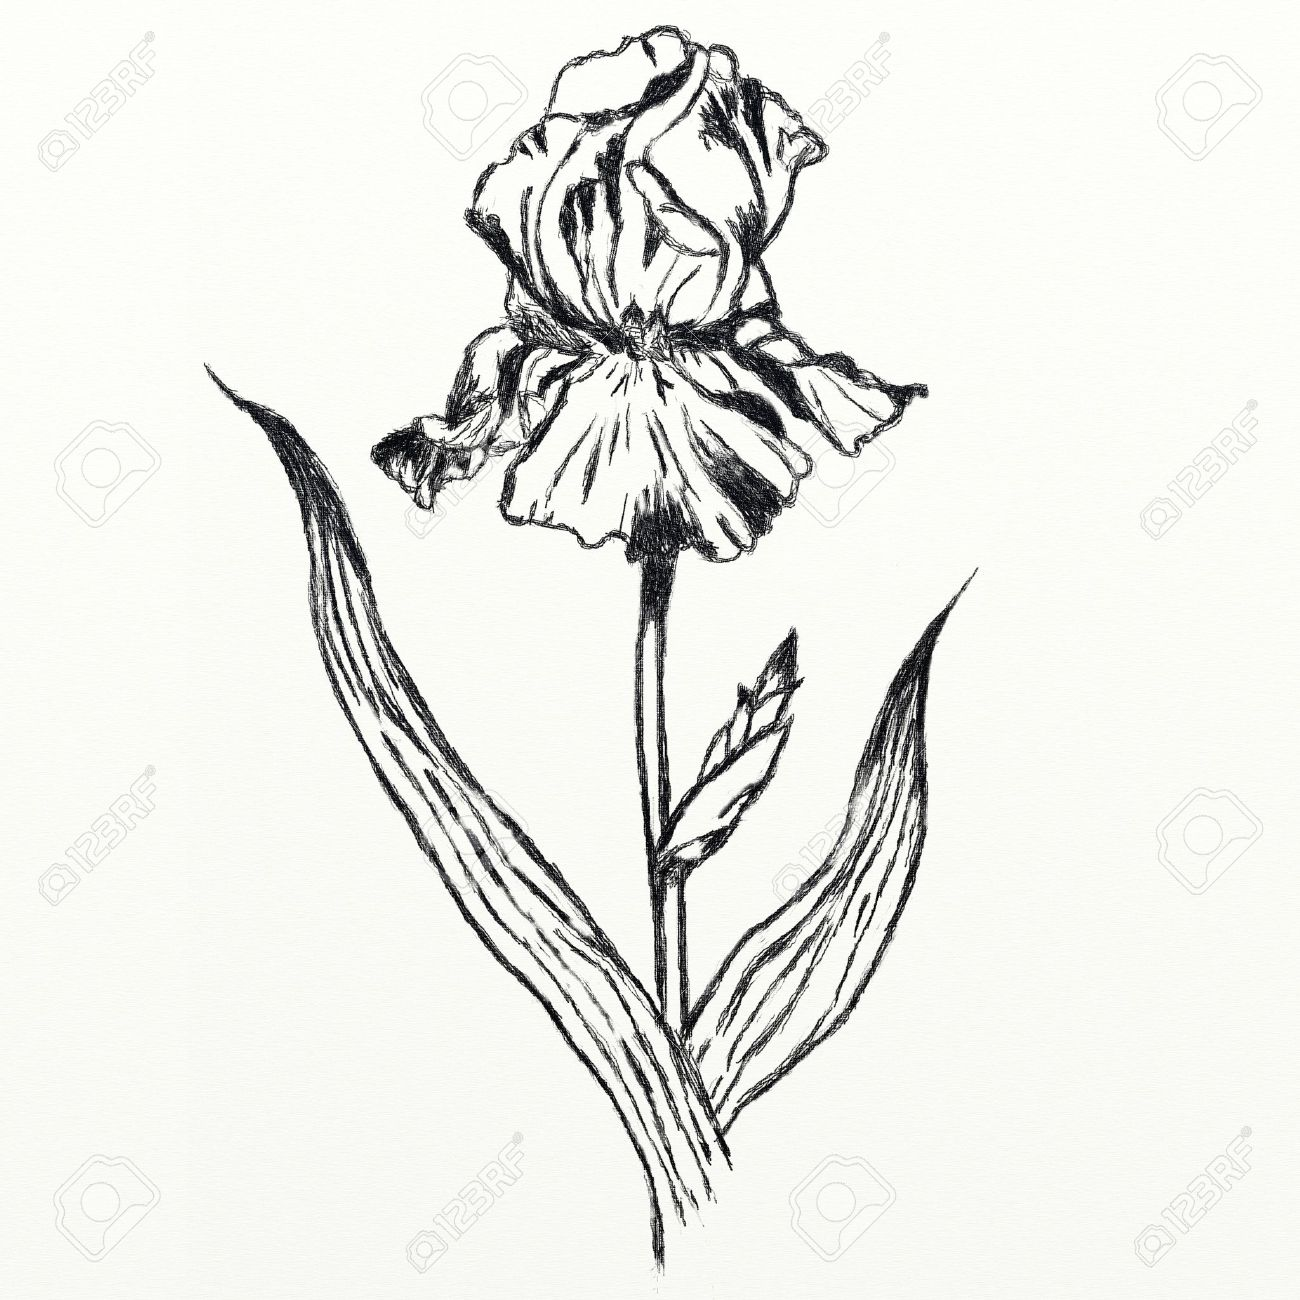 1300x1300 Drawing Iris Flower, Realistic Sketch Stock Photo, Picture